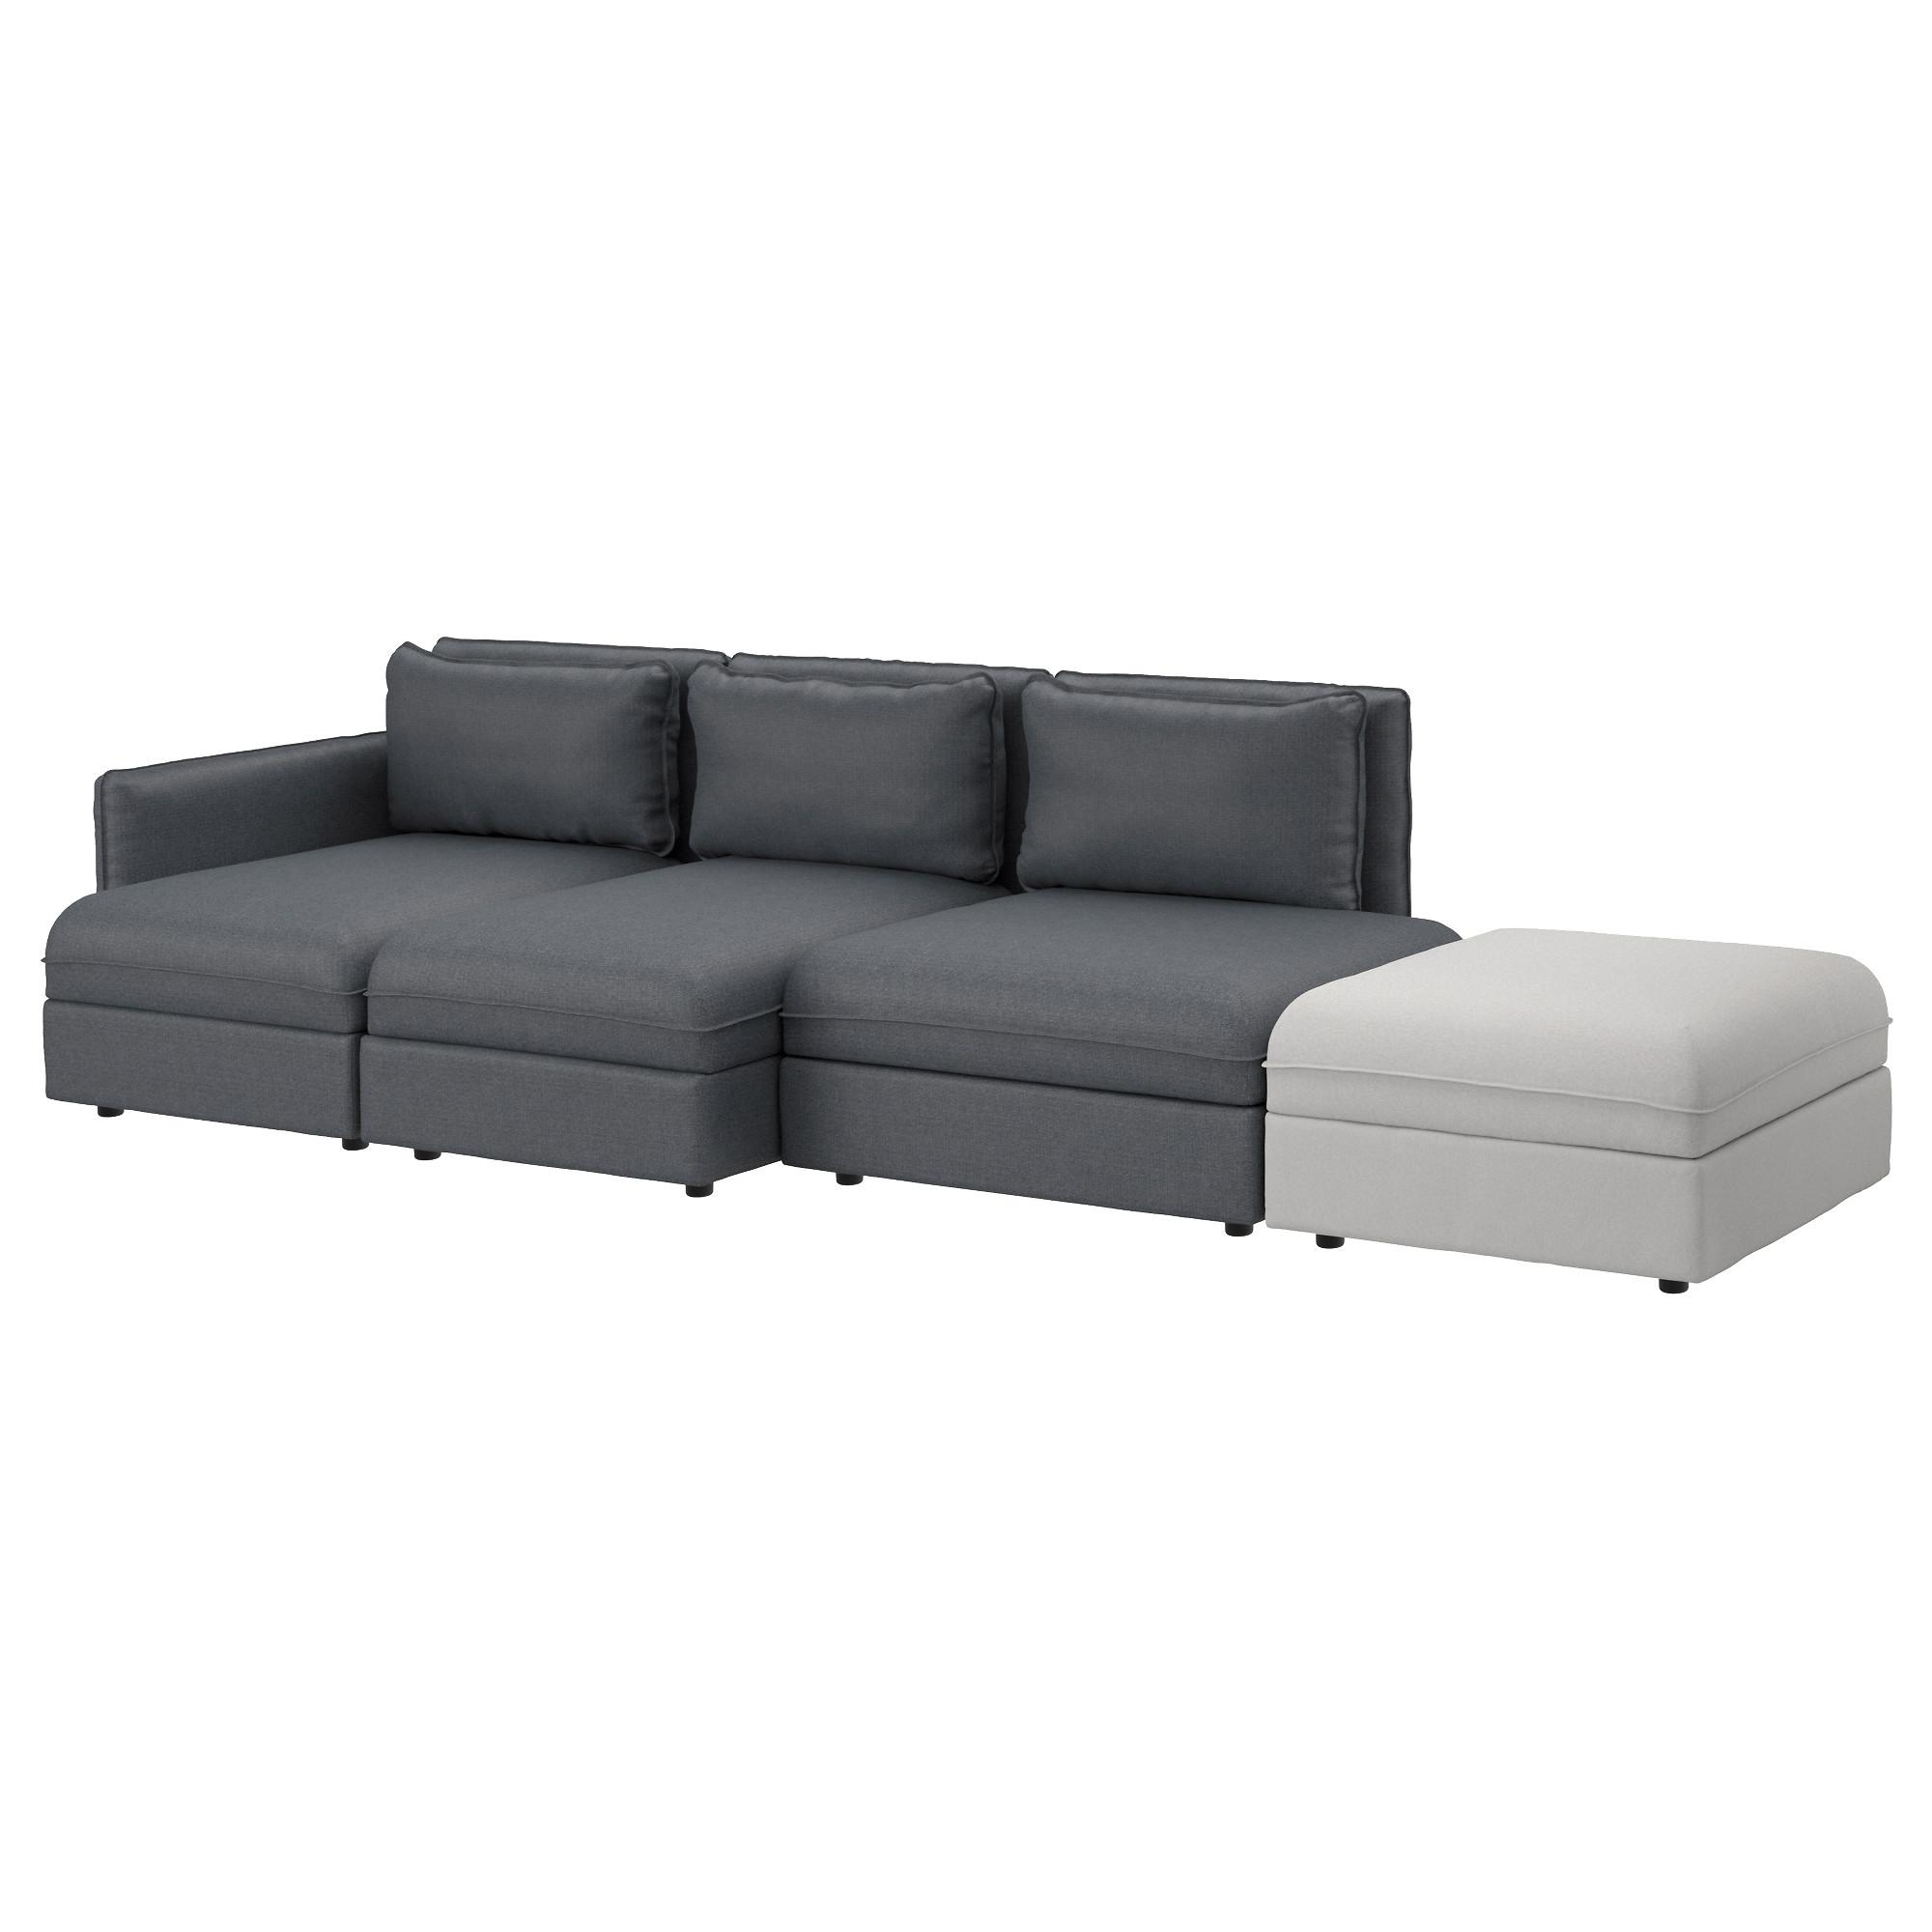 Sectional Sofas & Couches – Ikea With Regard To 2 Seat Sectional Sofas (Image 11 of 15)